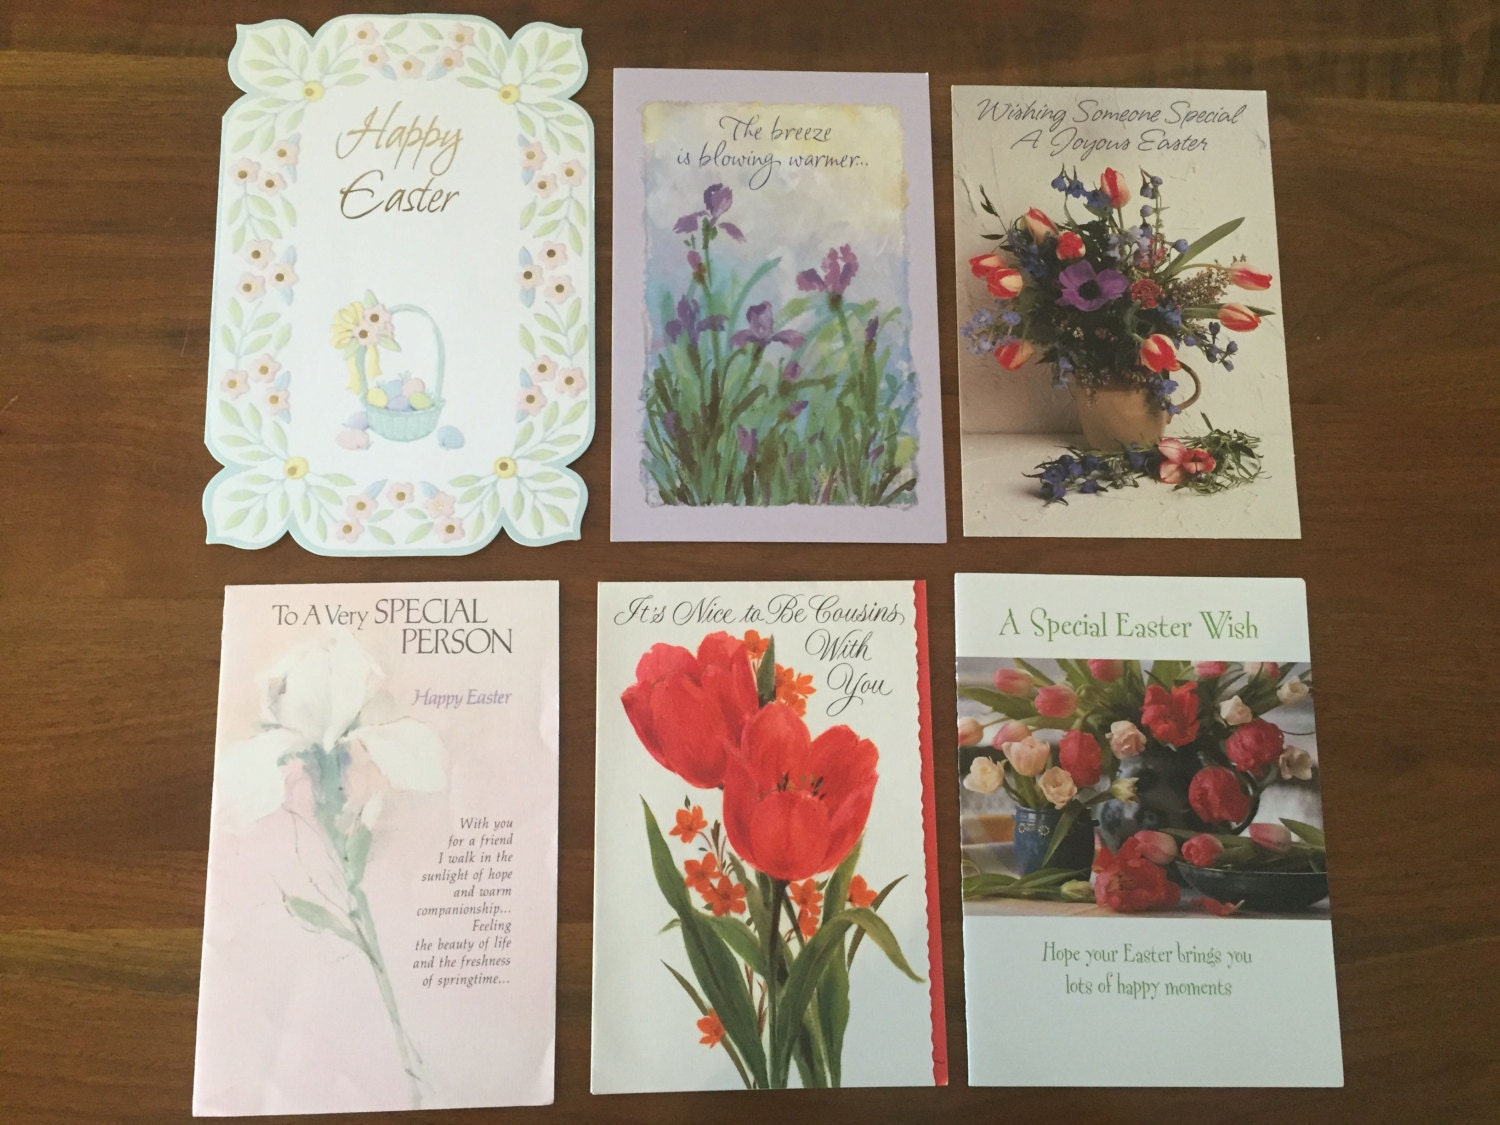 18 vintage easter cards used greeting cards from the 1970s 400 kristyandbryce Choice Image